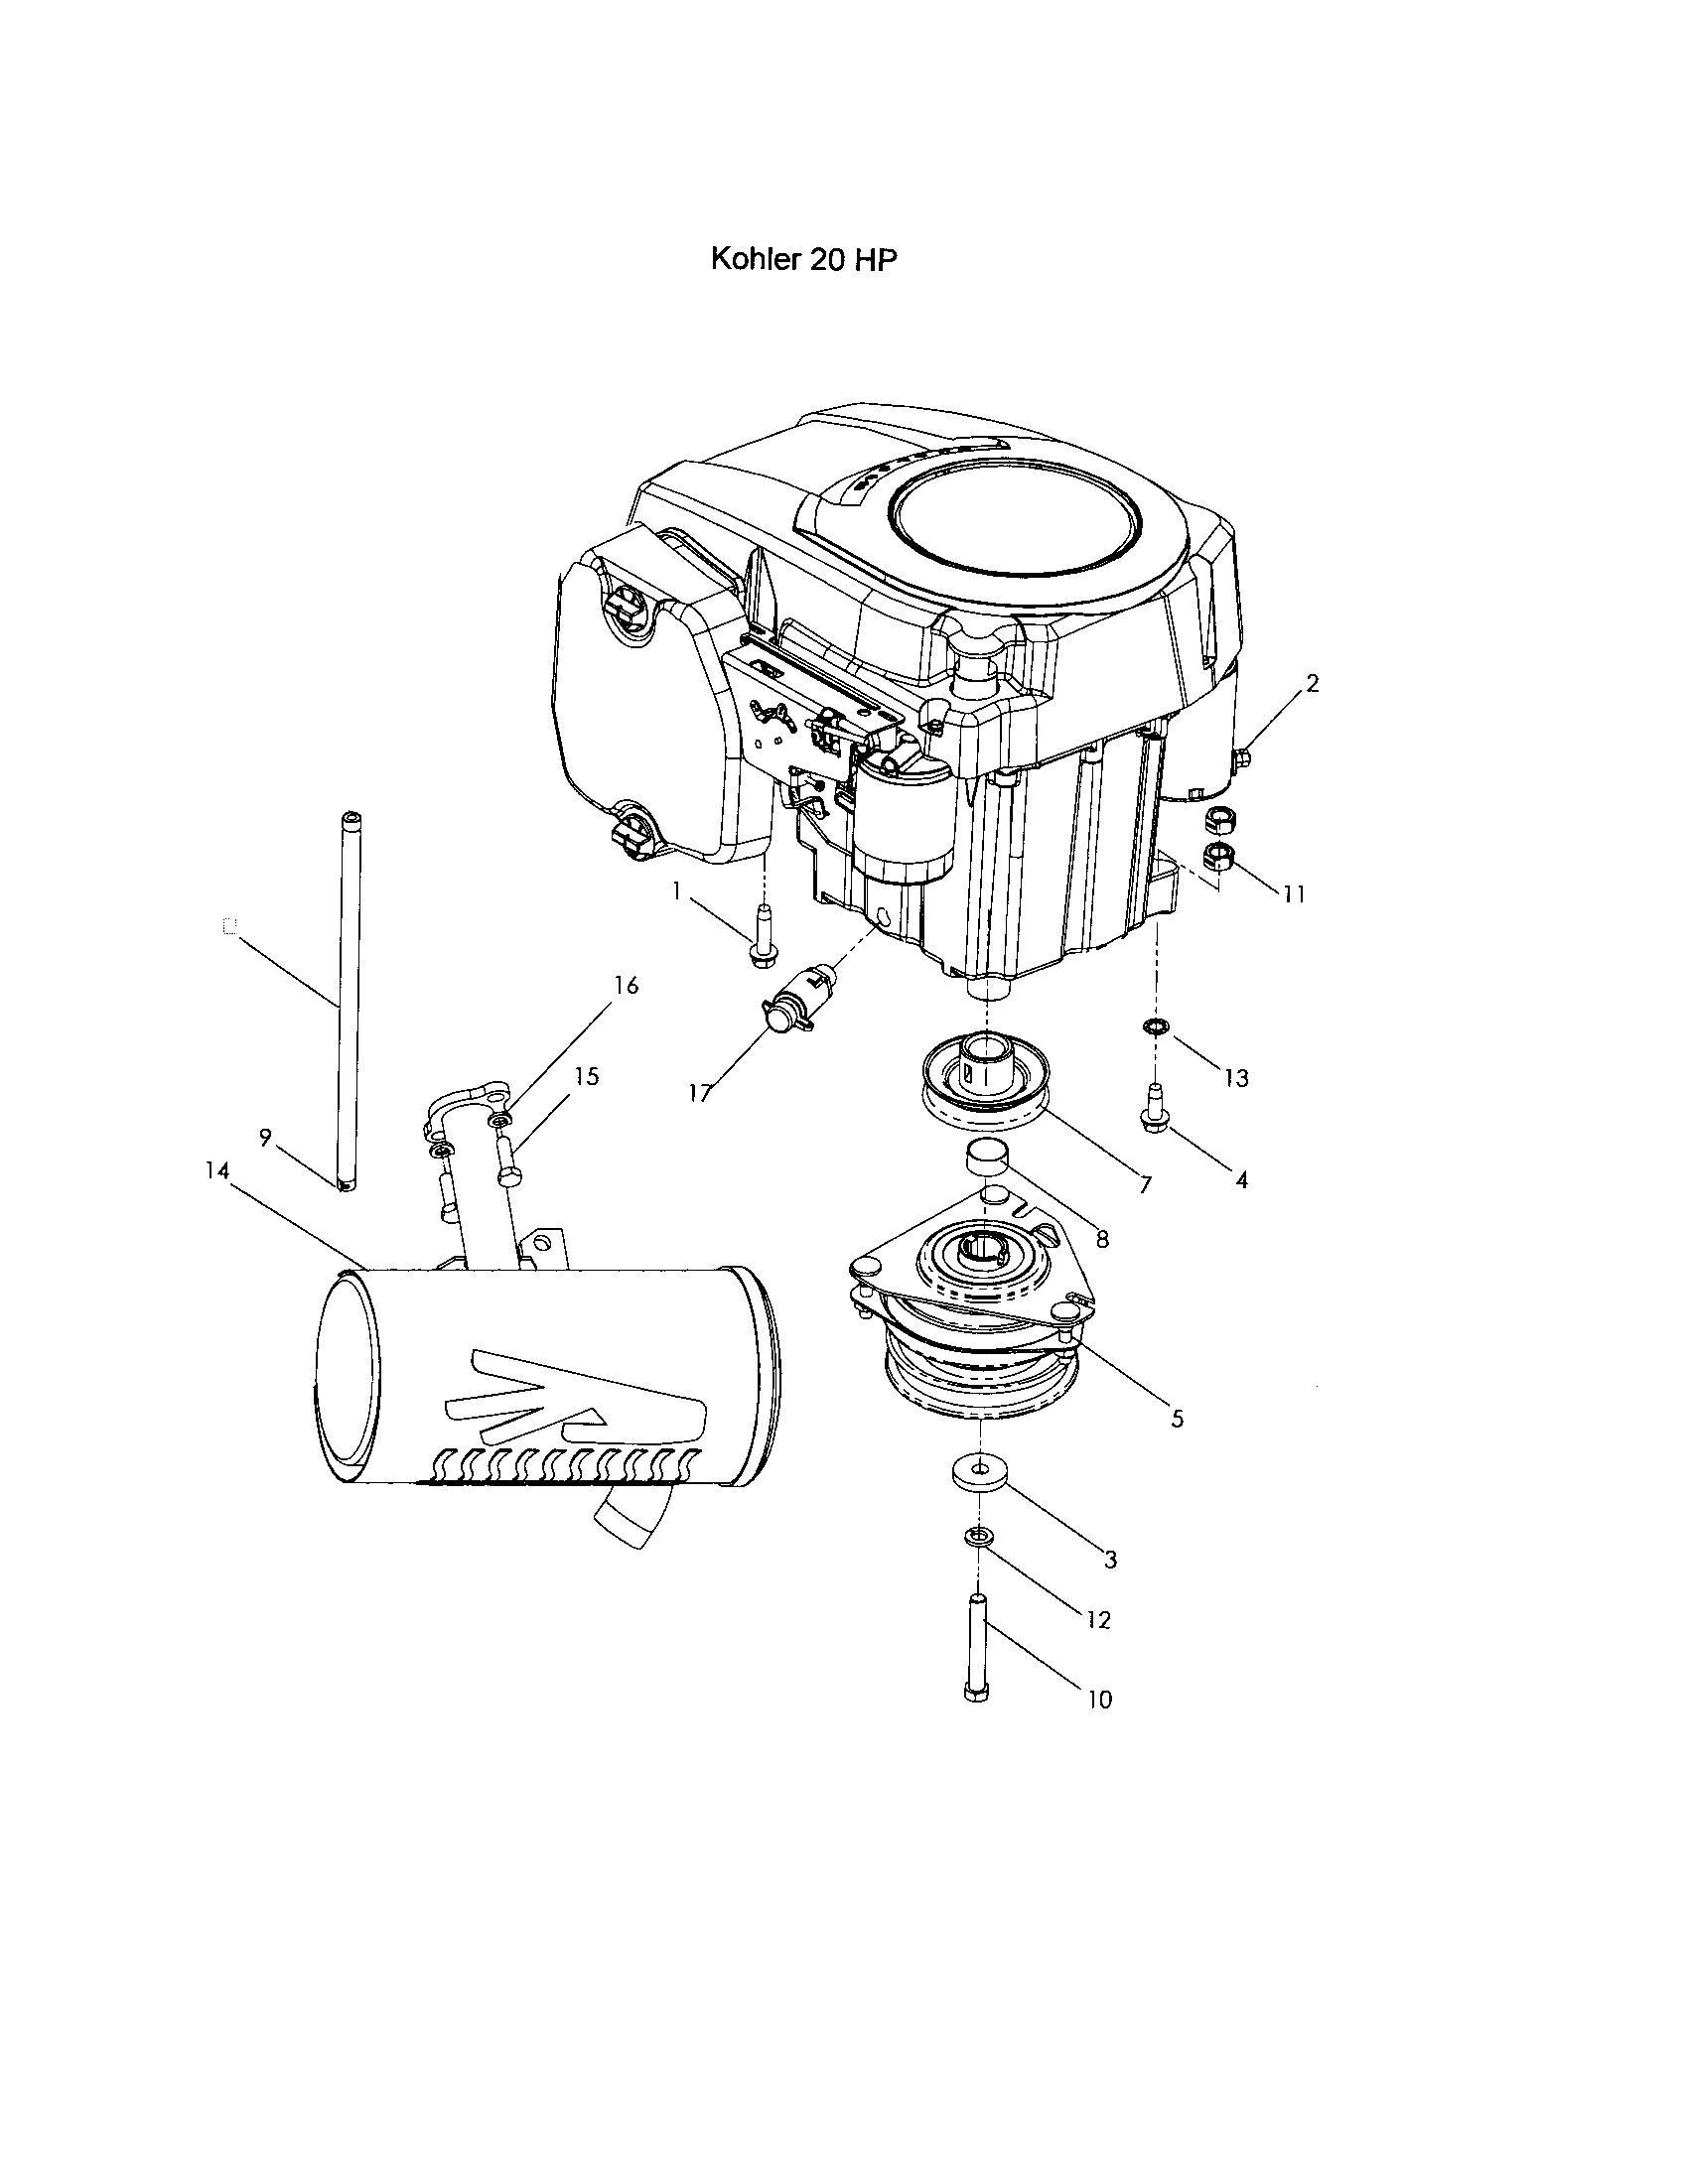 kohler courage 25 wiring diagram